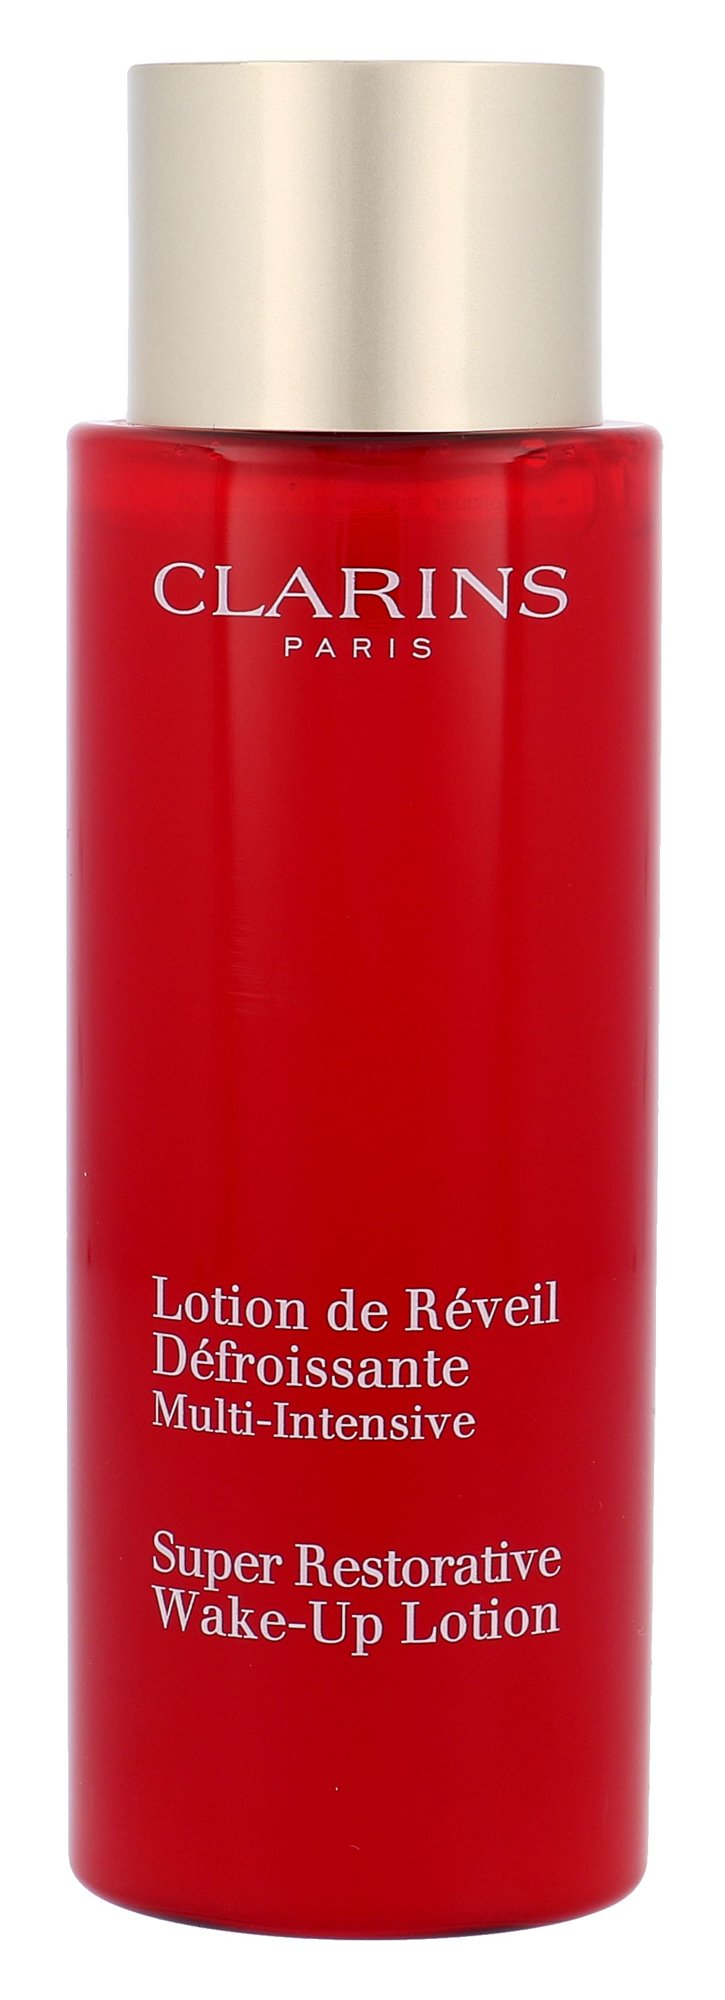 Clarins Super Restorative Cosmetic 125ml